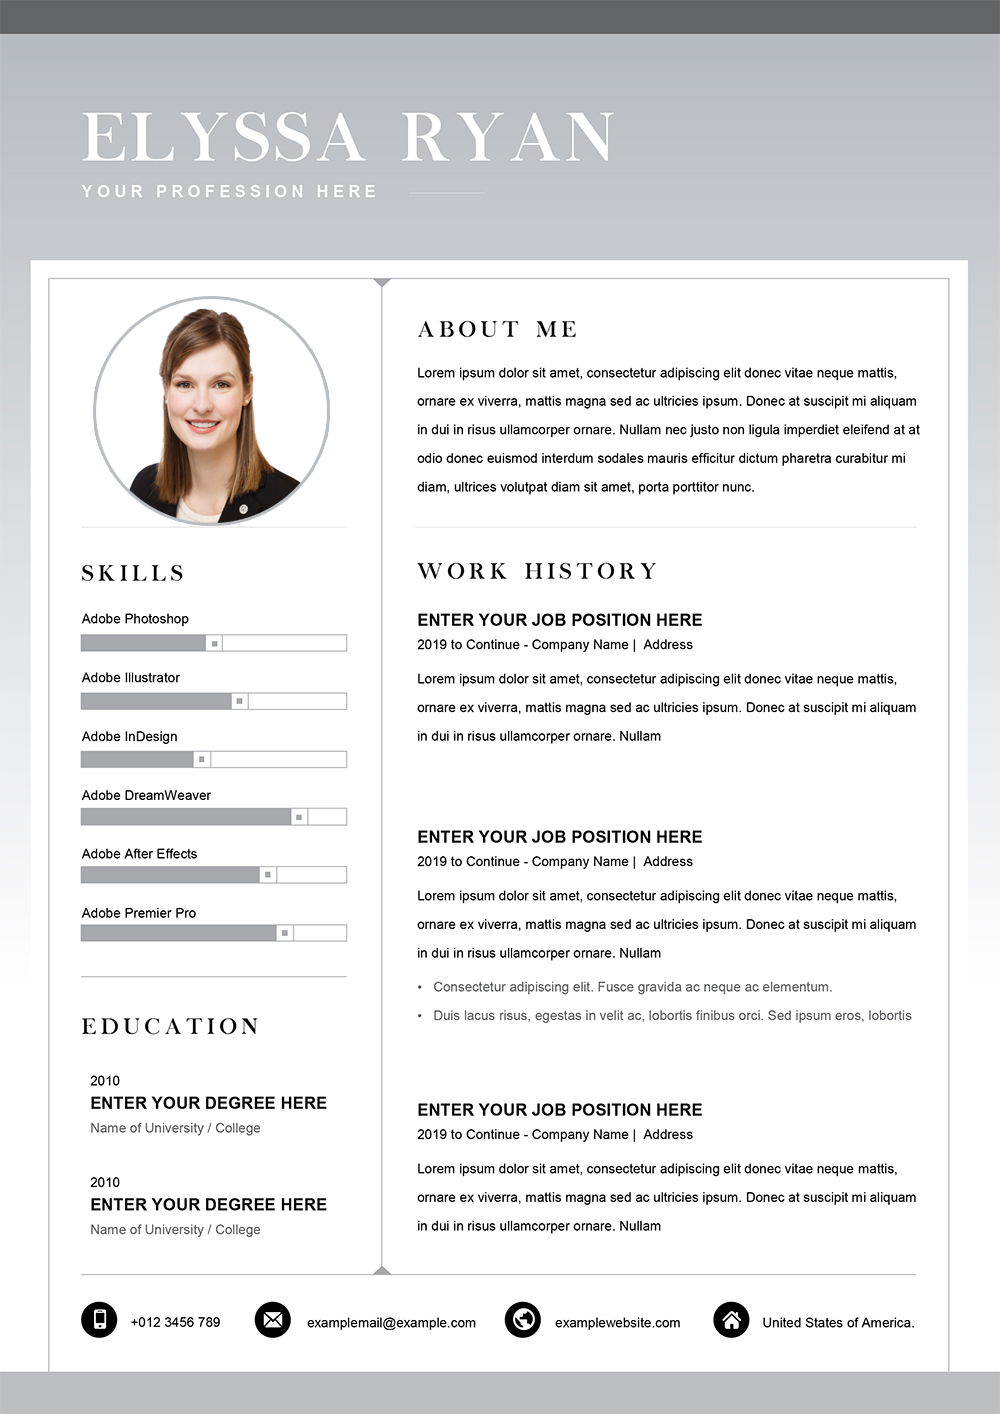 job application resume template in word format slide good qualifications for sample Resume Job Application Resume Template